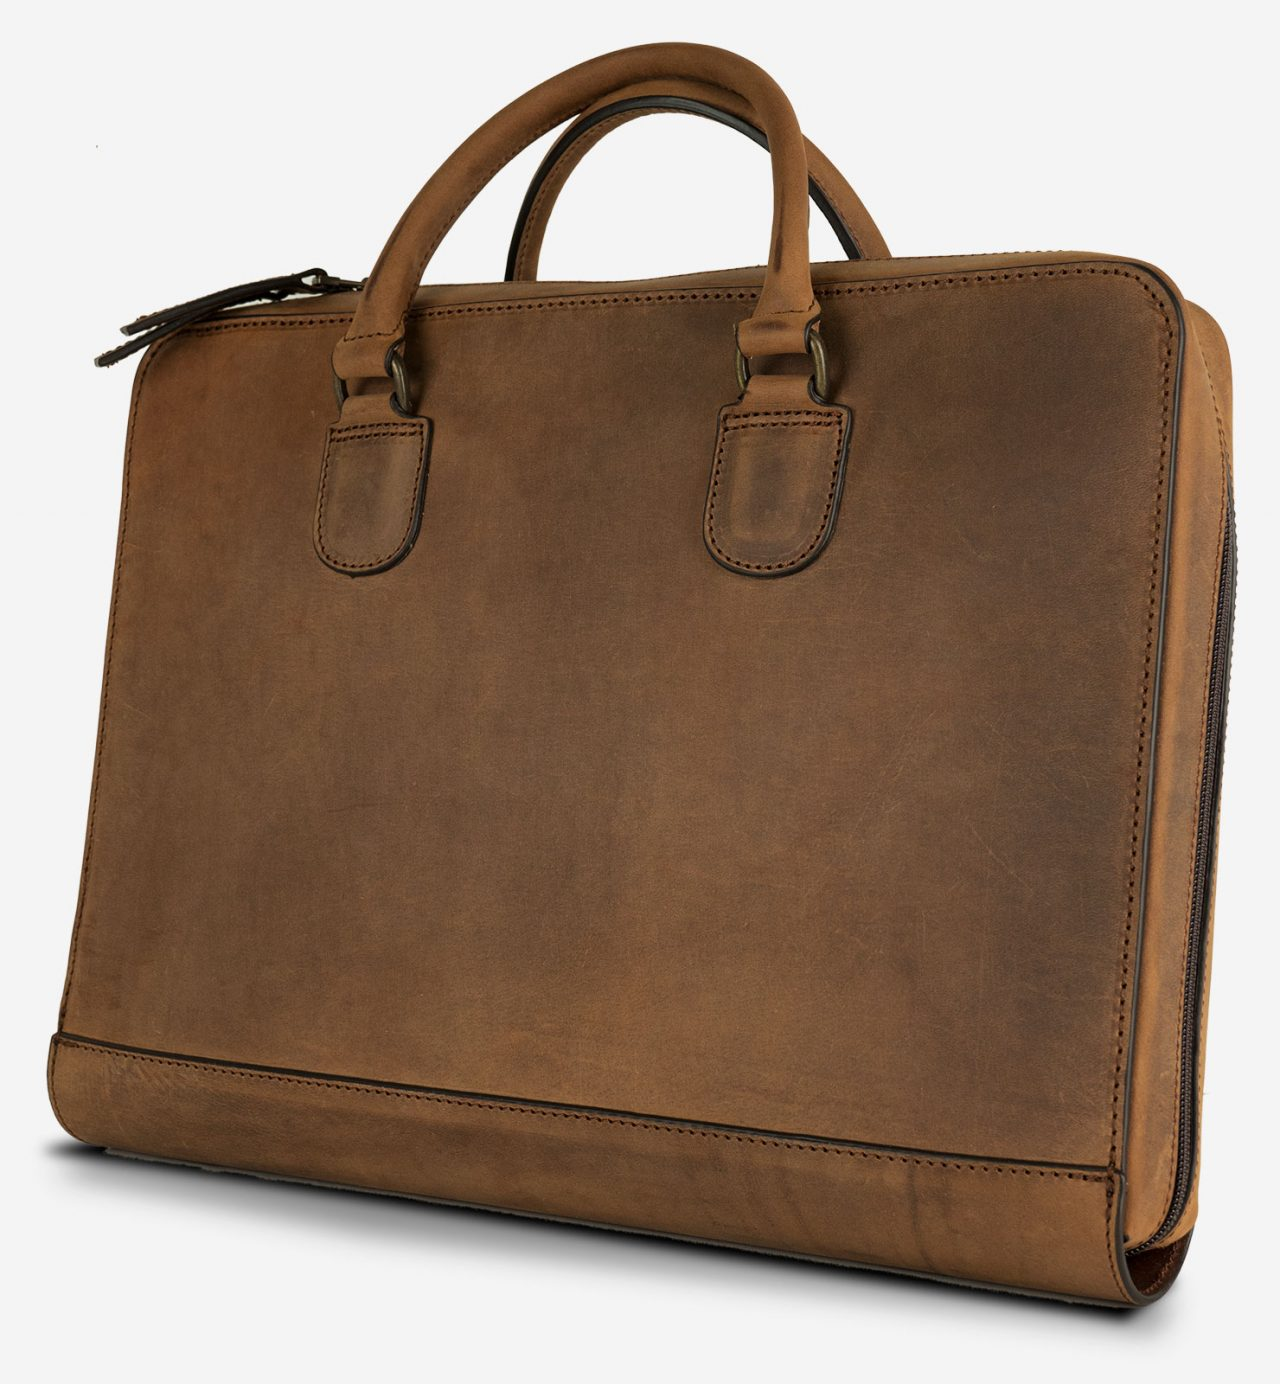 Flat leather briefcase for computer.